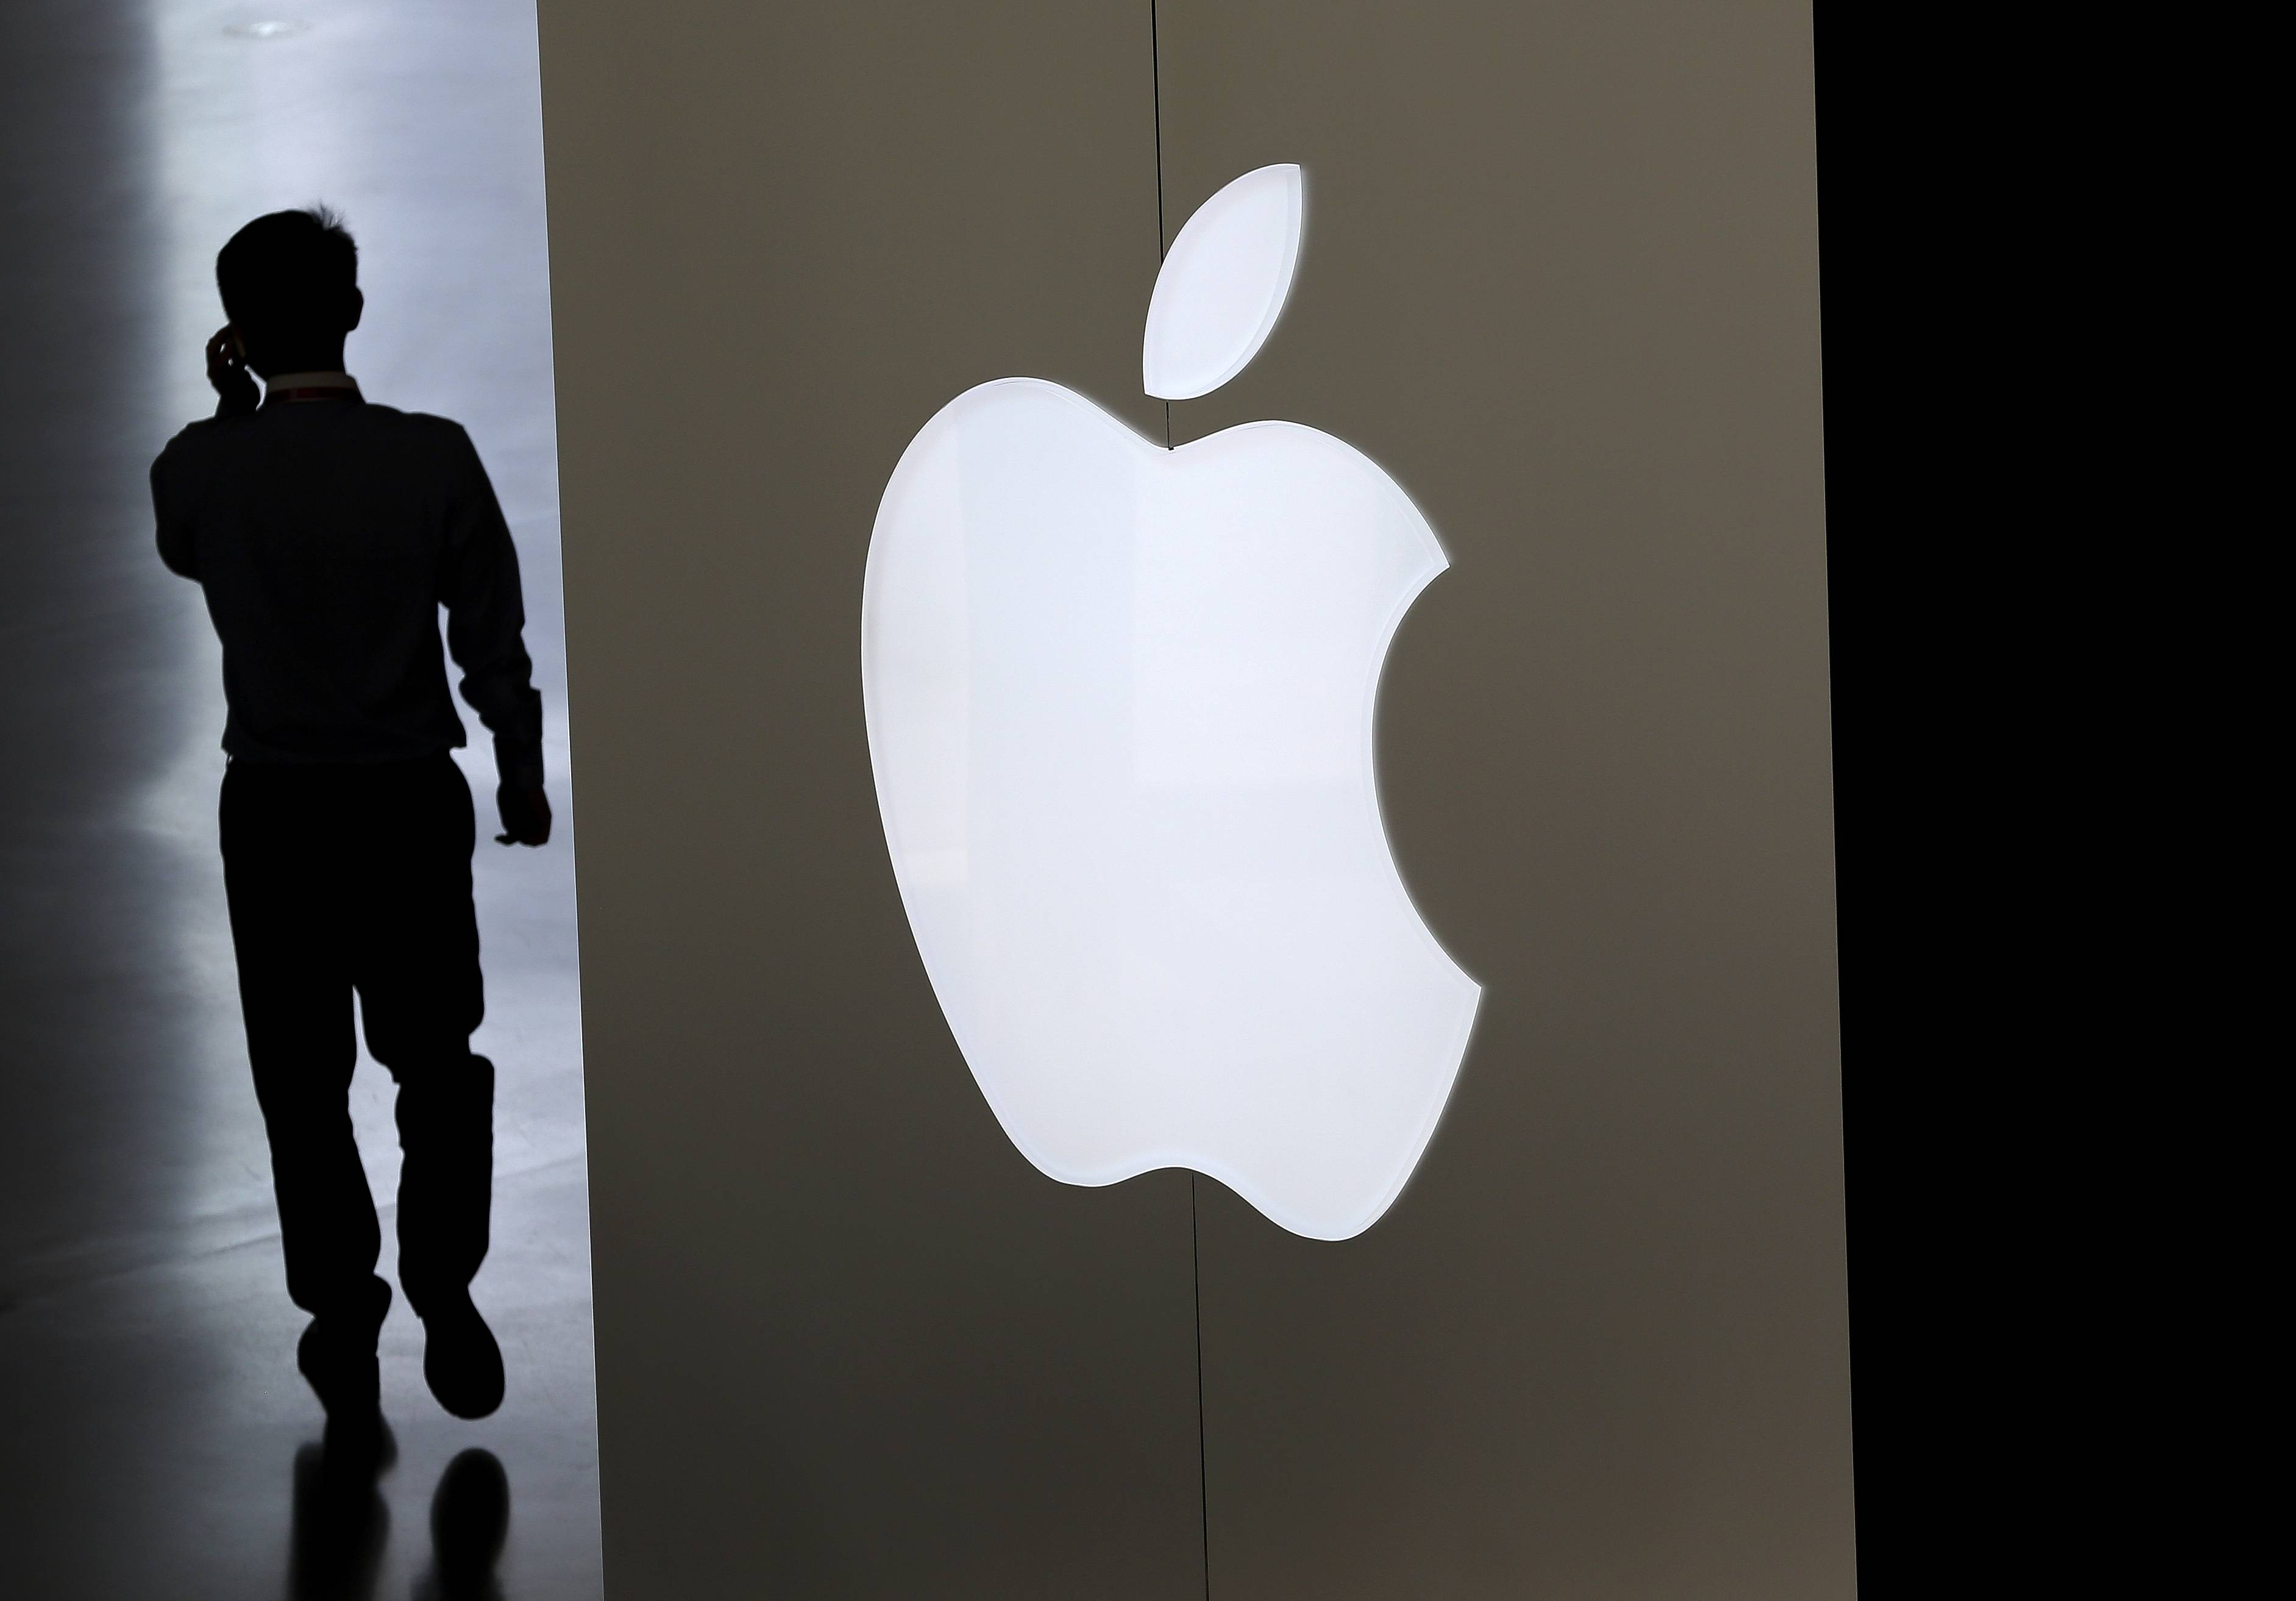 Apple plans new security features after hack of celebrity photos